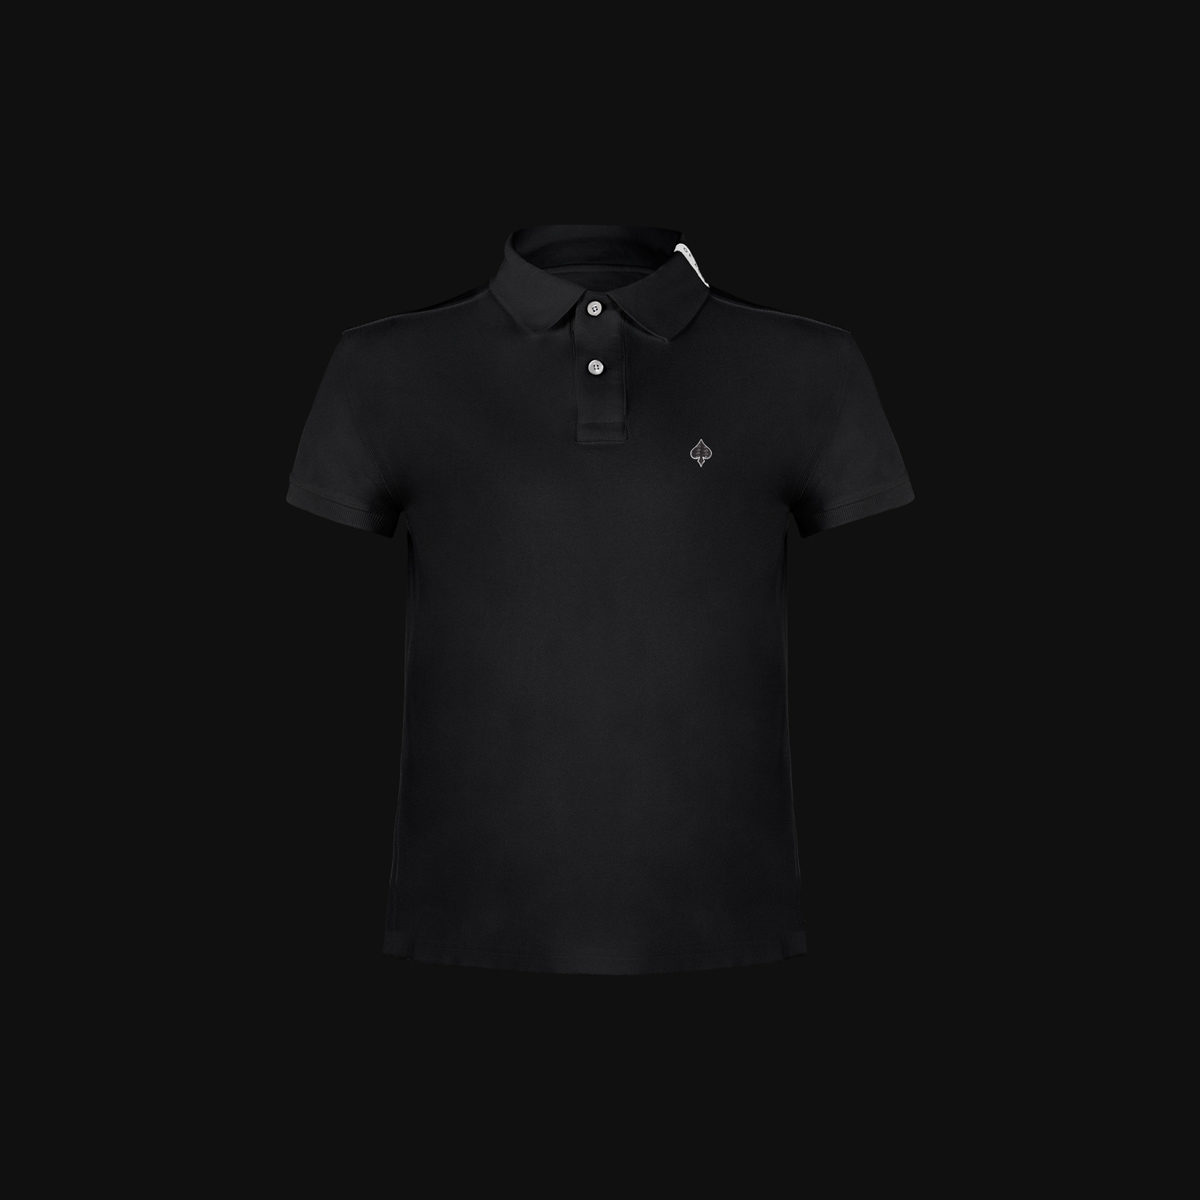 The Exclusive Black Ace polo with carbon fiber for man